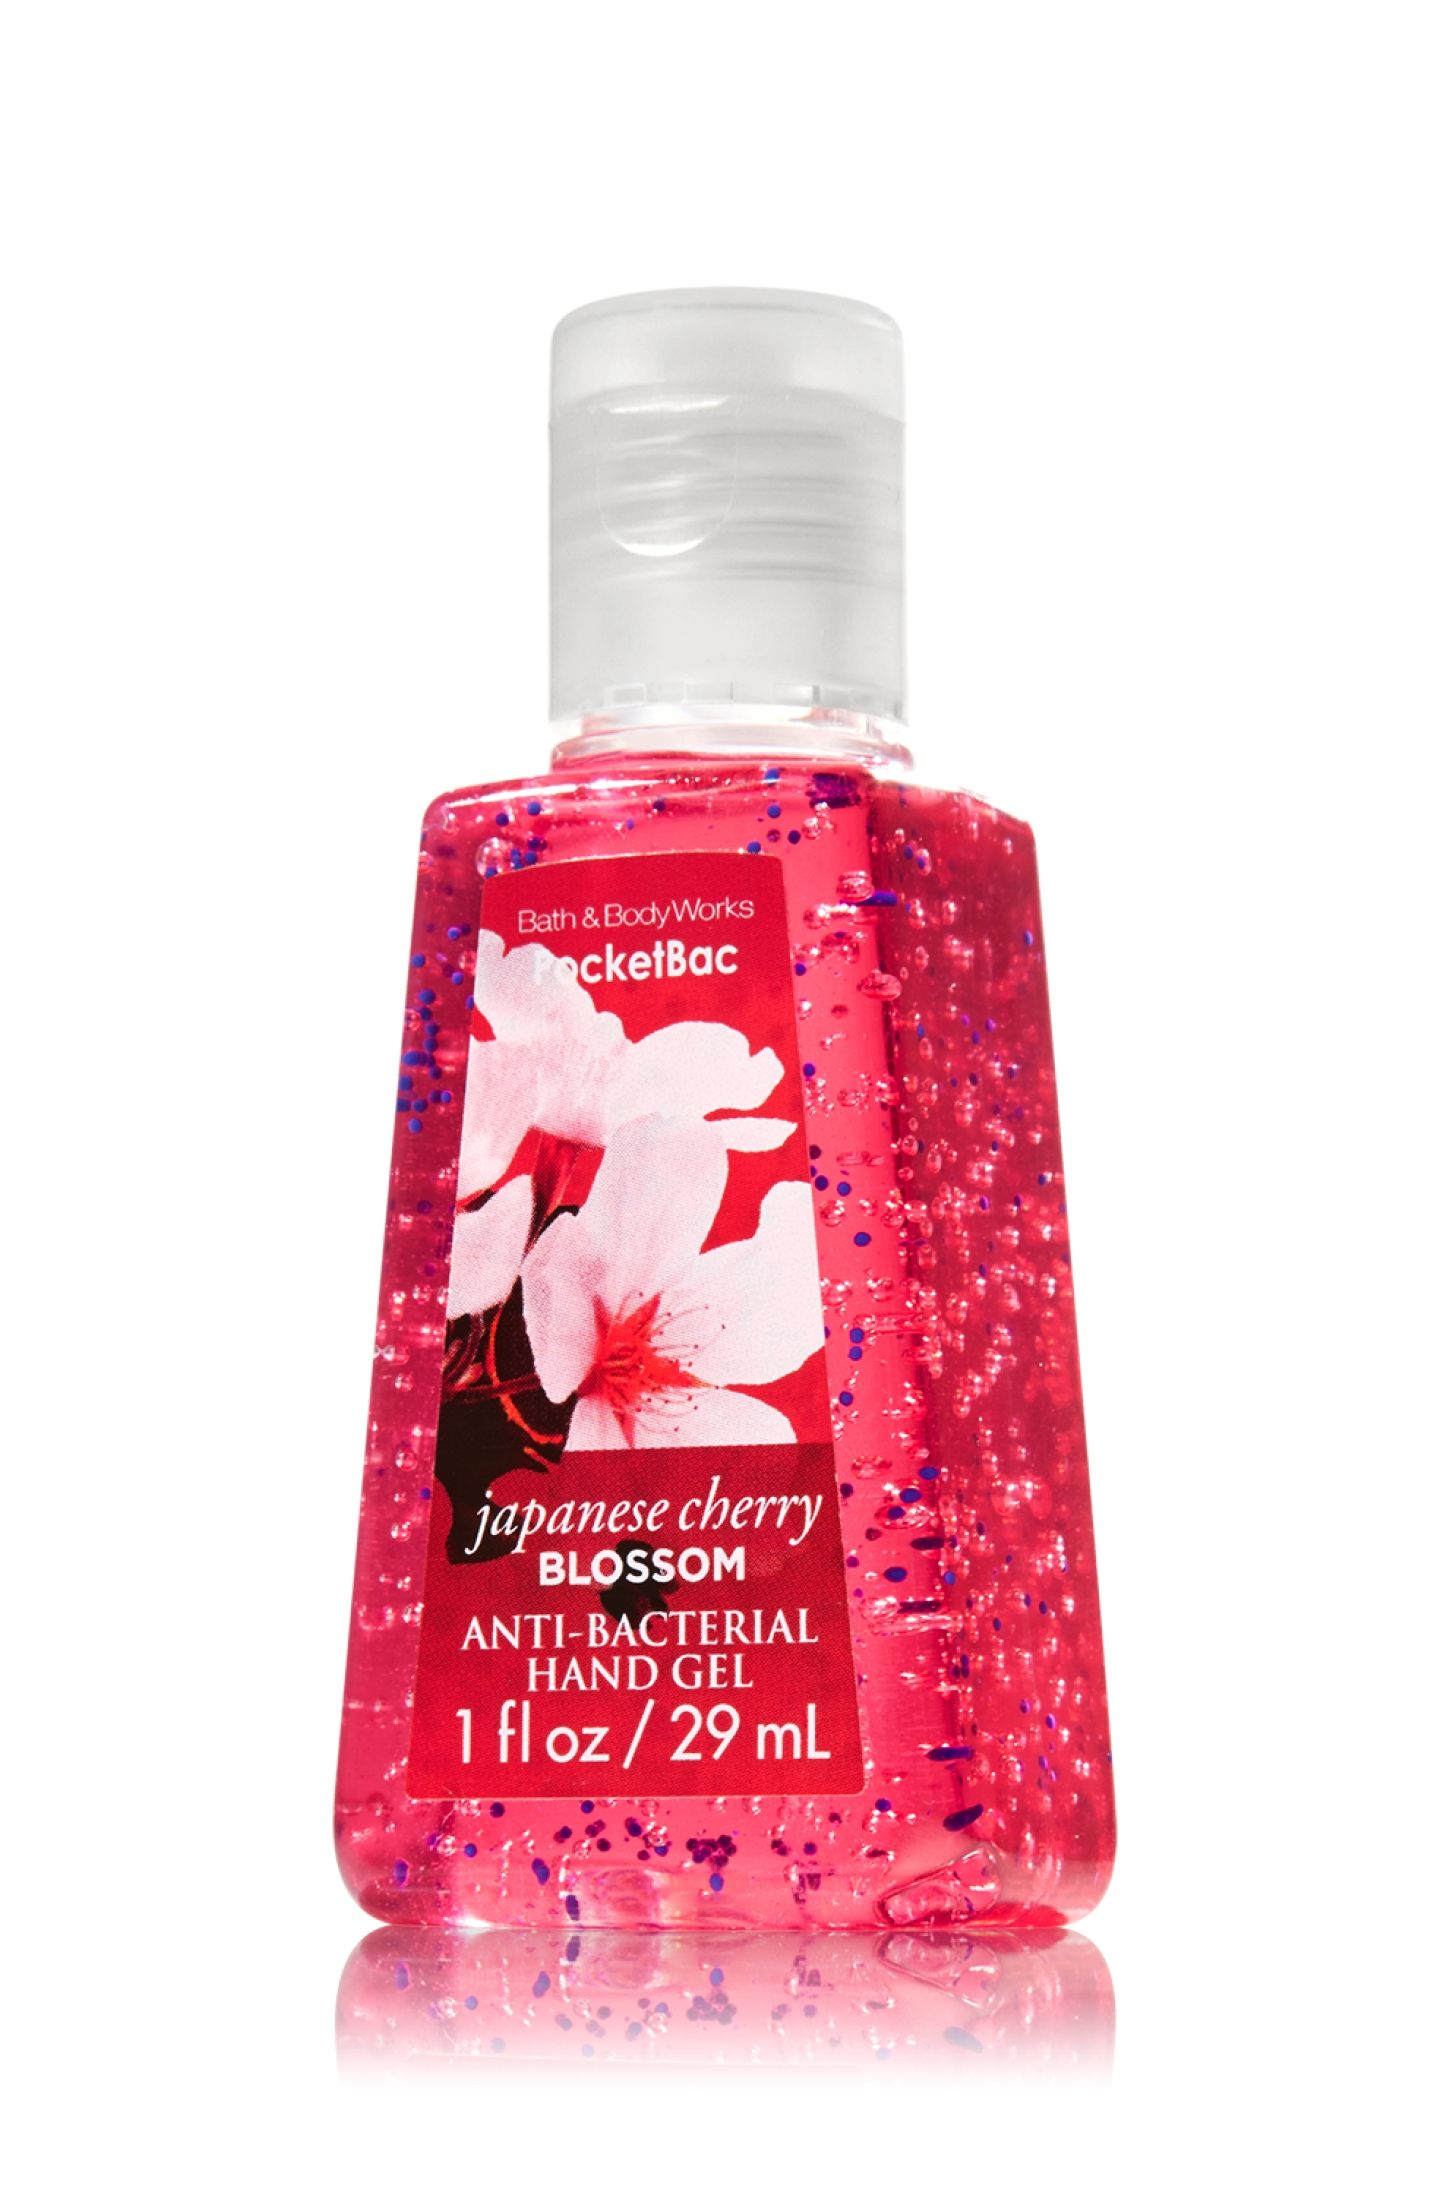 Japanese Cherry Blossom Pocketbac Sanitizing Hand Gel Soap